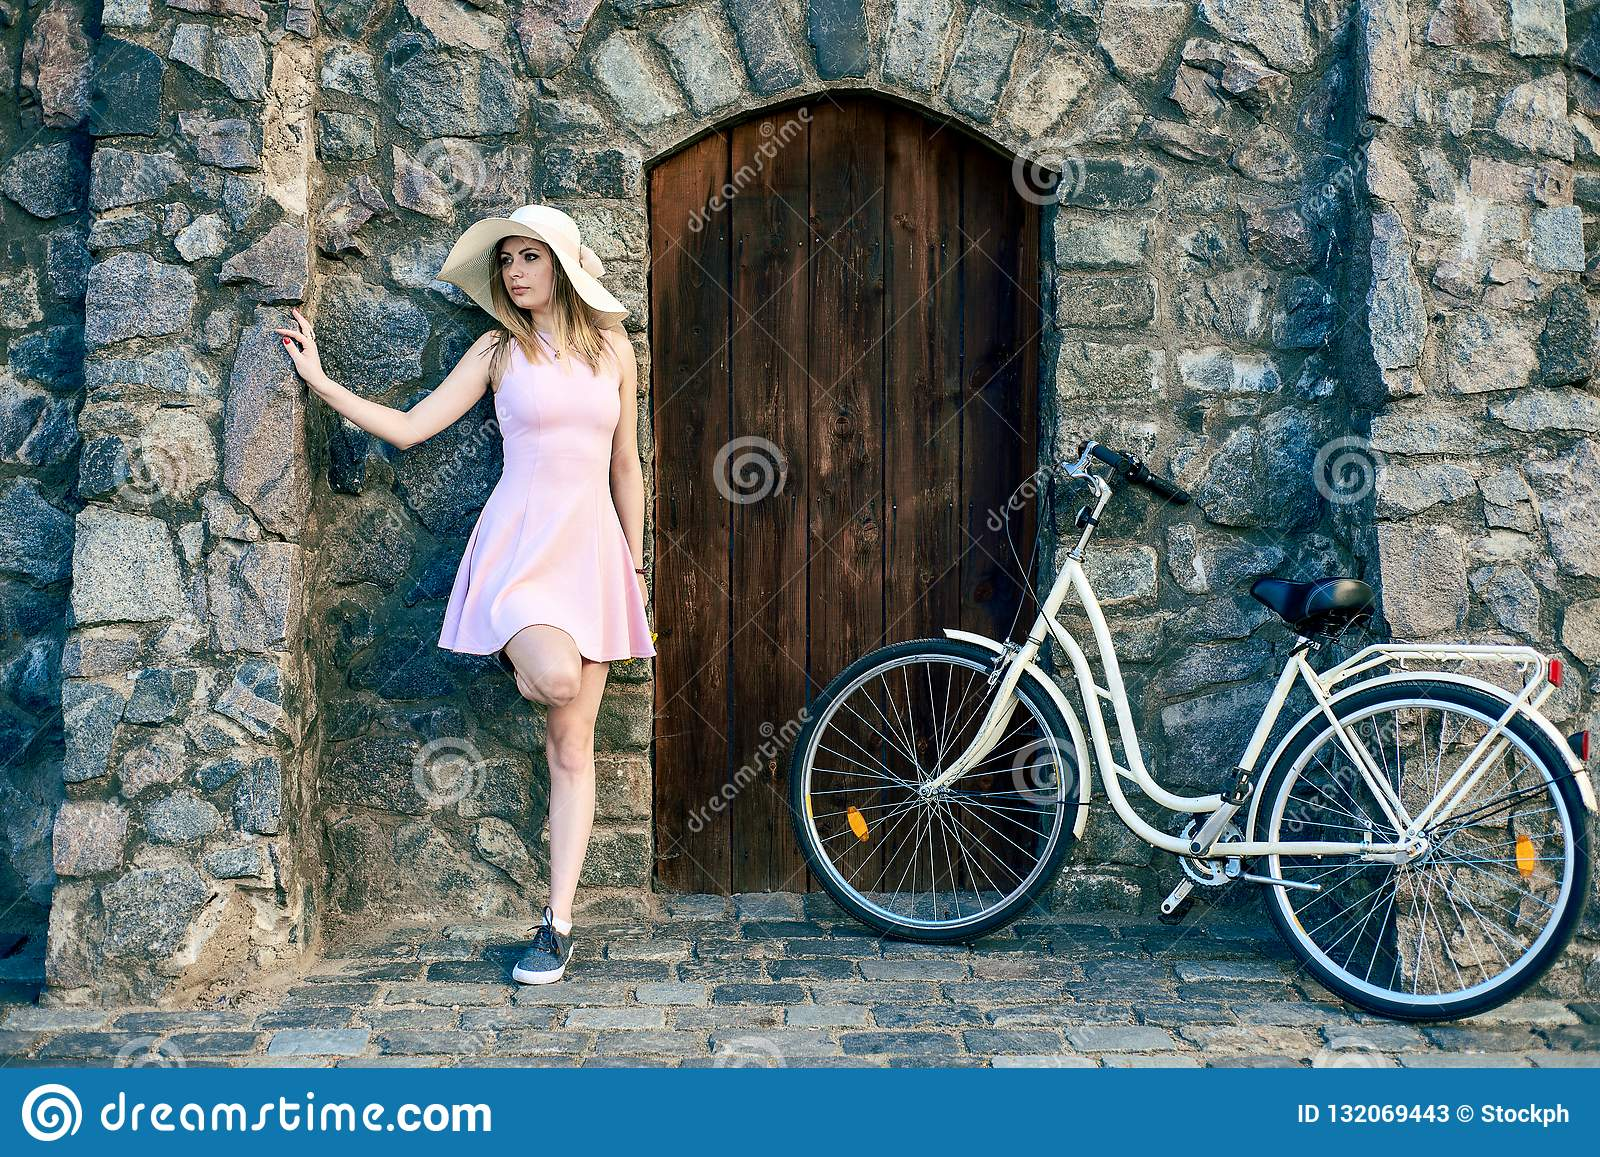 Girl in a pink dress and a straw hat is standing beside a textured stone, old wall with a wooden door